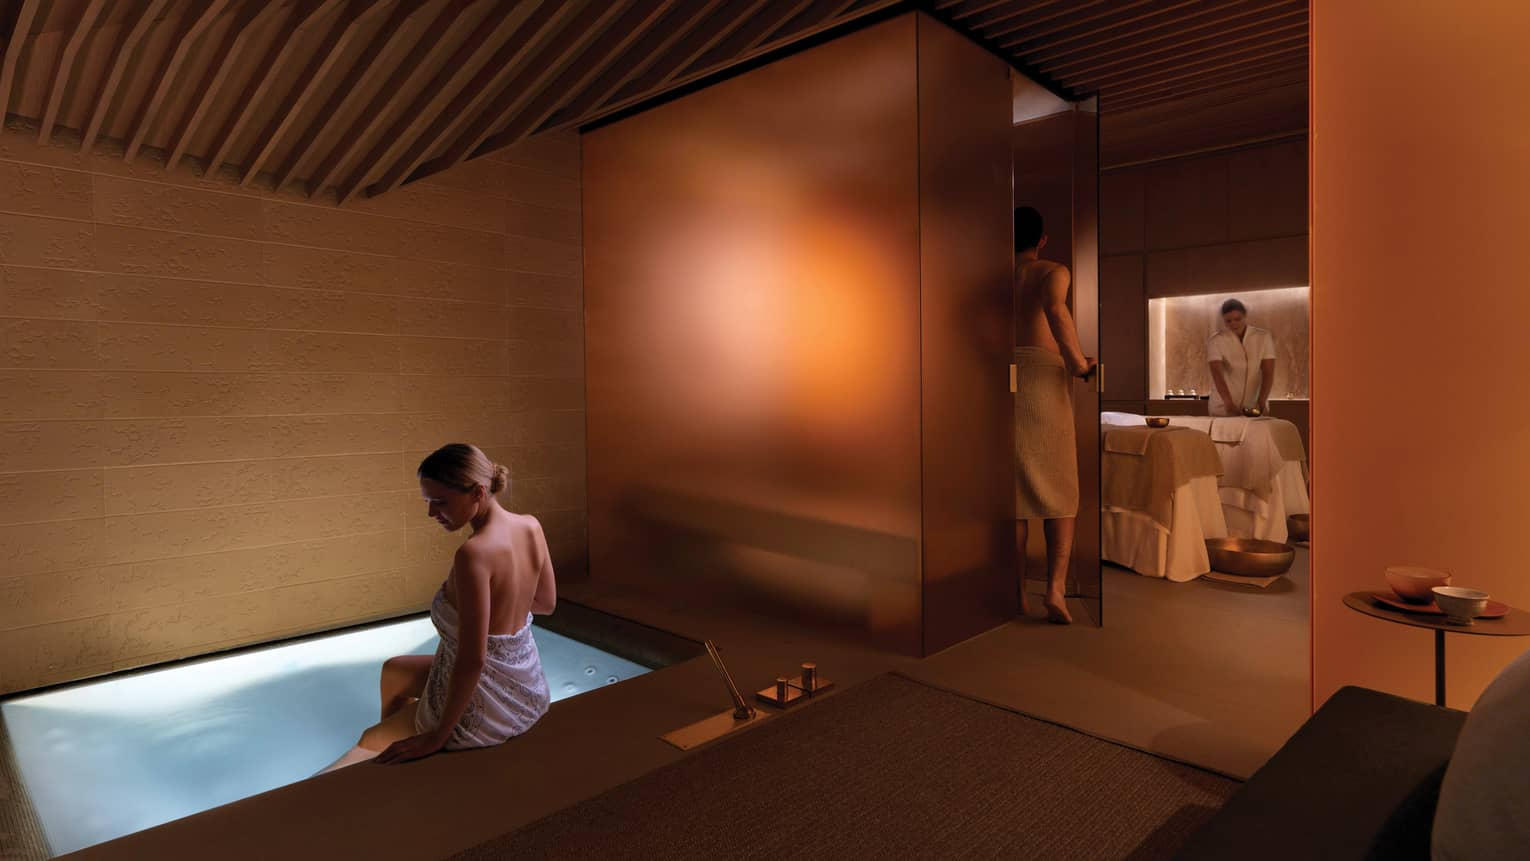 Couples Suite, woman in towel dips feet in small spa tub with lights, man enters glass shower